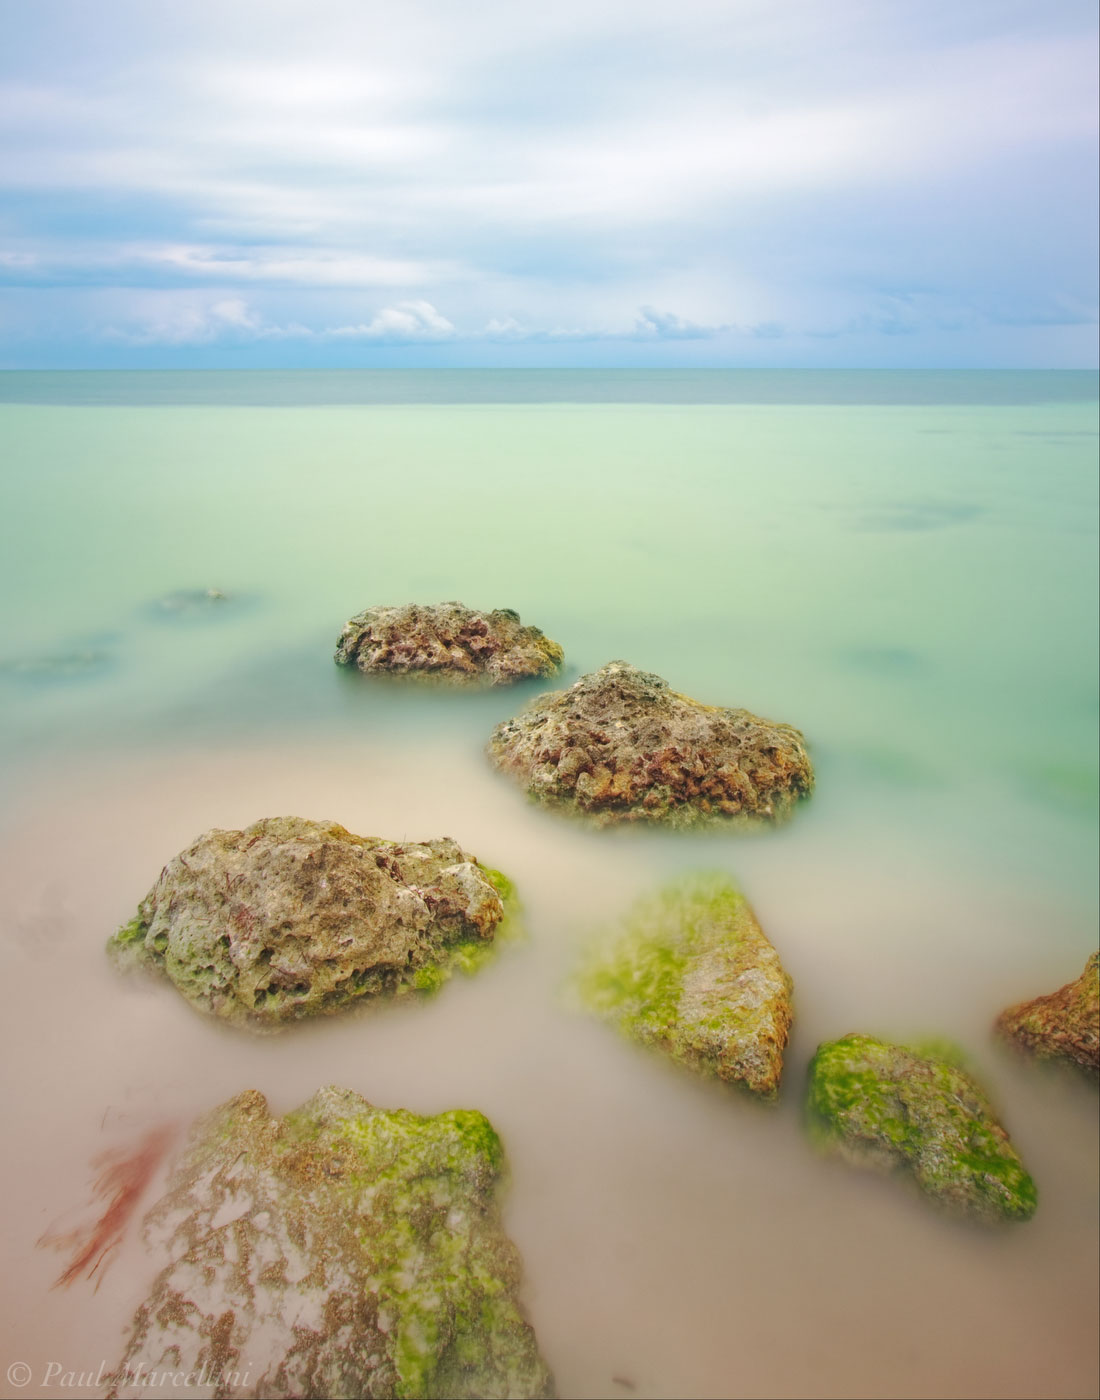 bahia honda state park, keys, bahia honda, florida keys, florida, south florida, nature, photography, photo